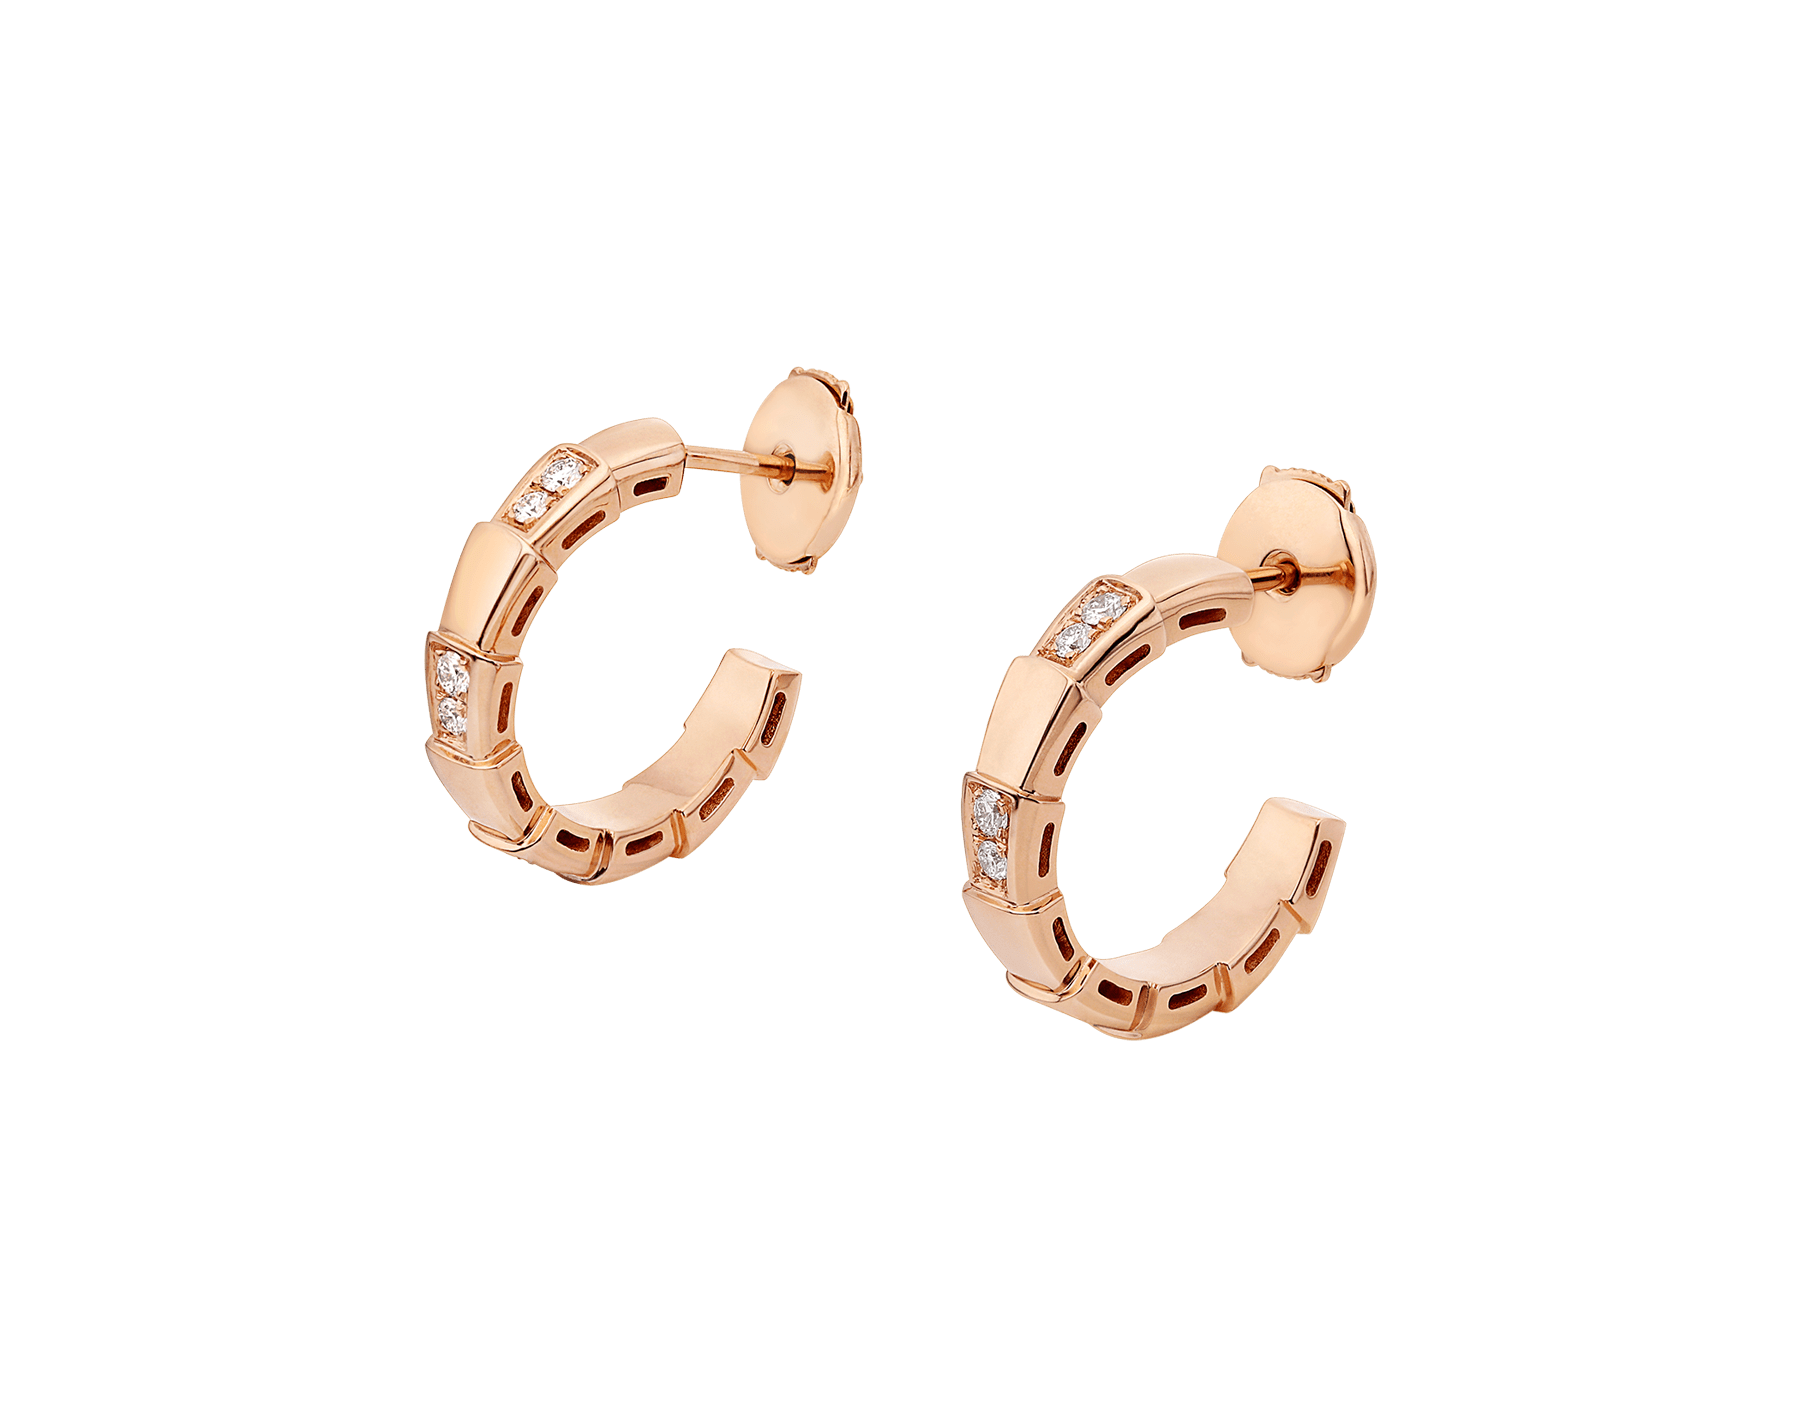 Serpenti Viper 18 kt rose gold earrings set with pavé diamonds. 356175 image 2